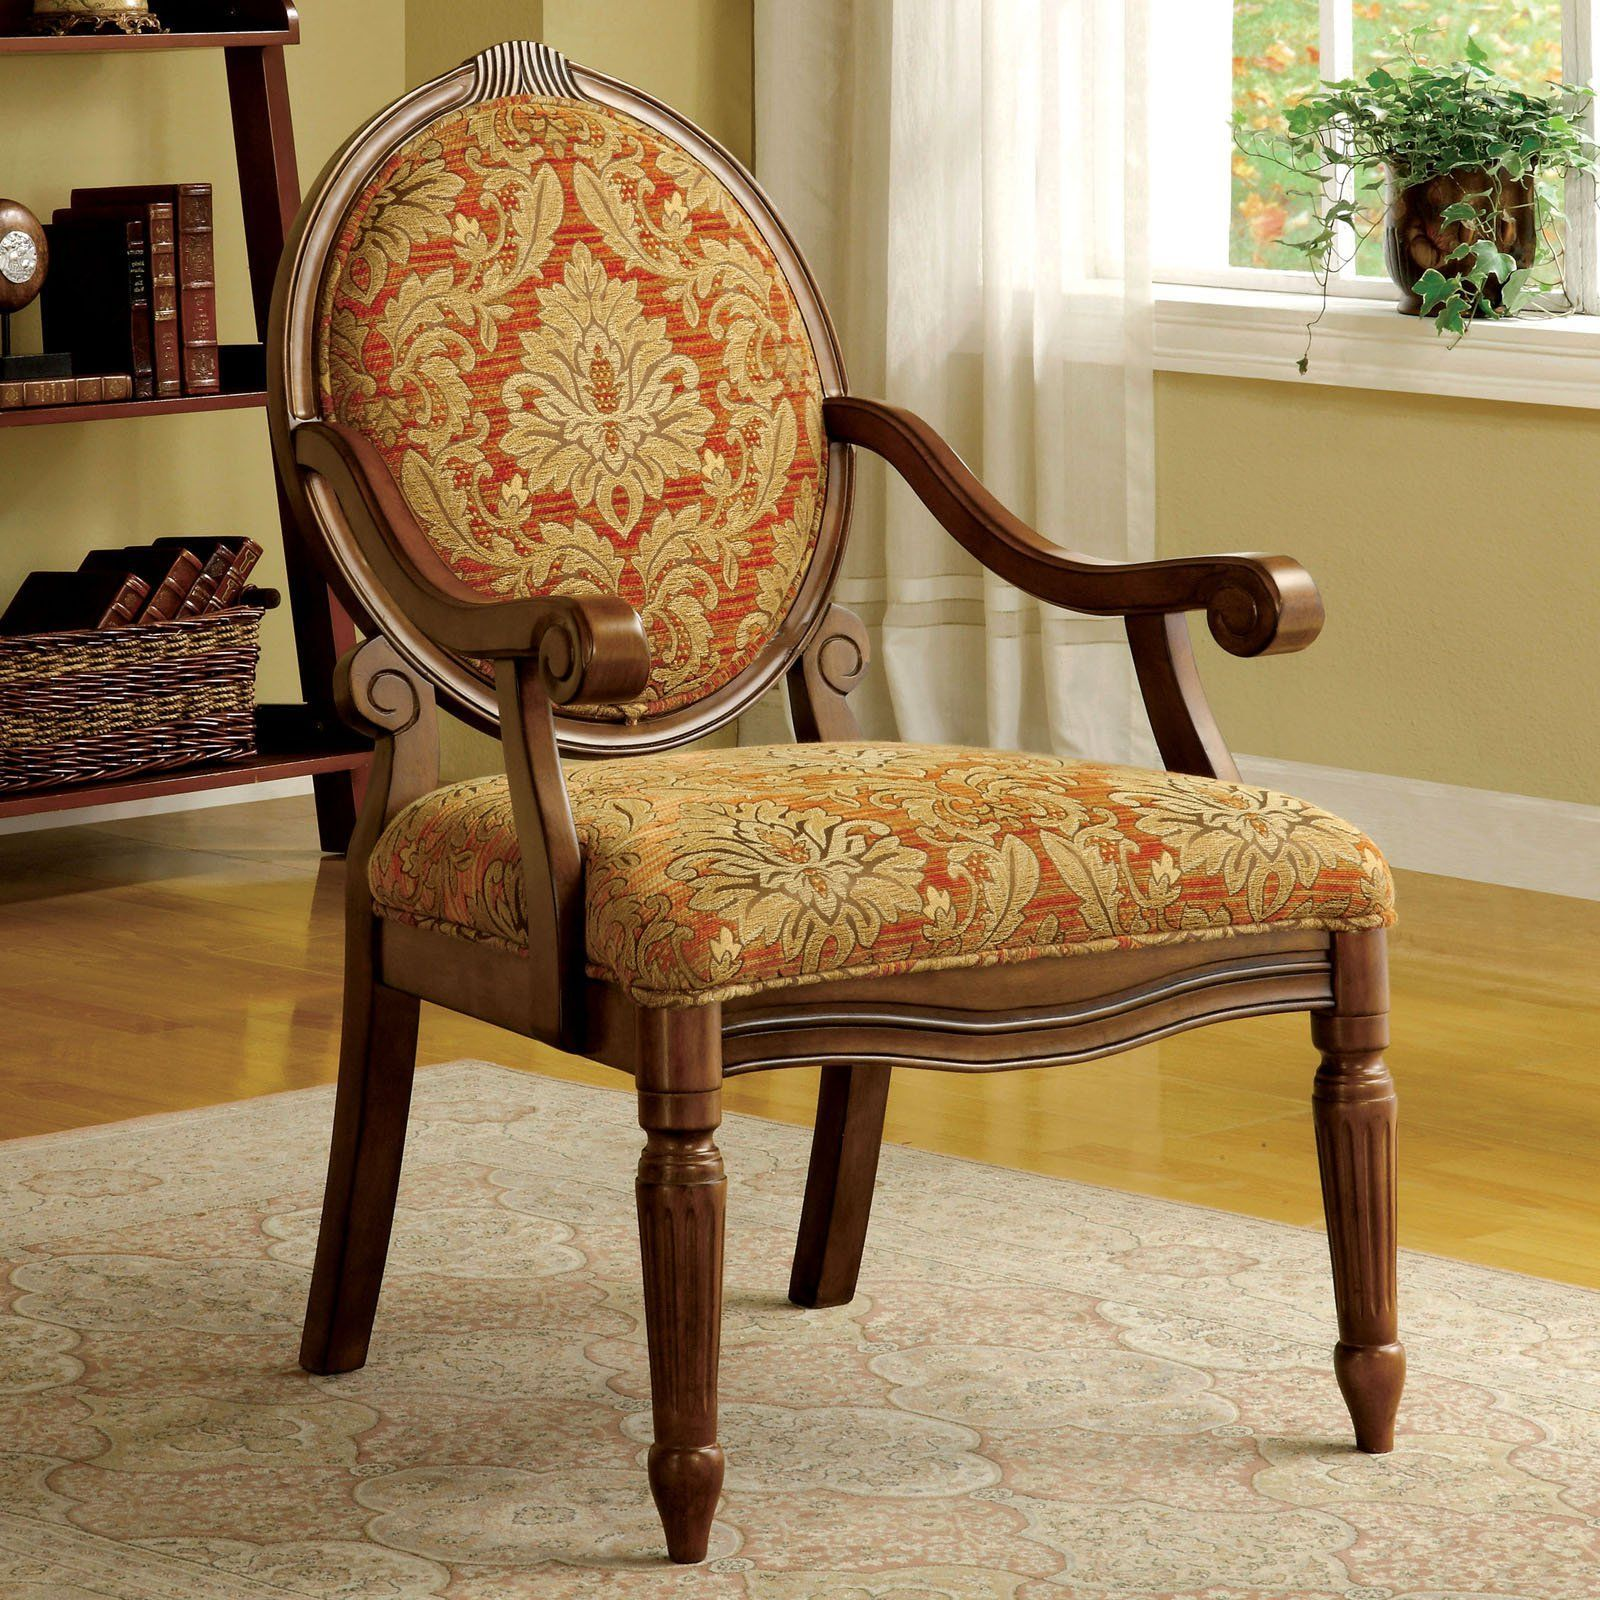 Furniture of america crenca padded accent chair with